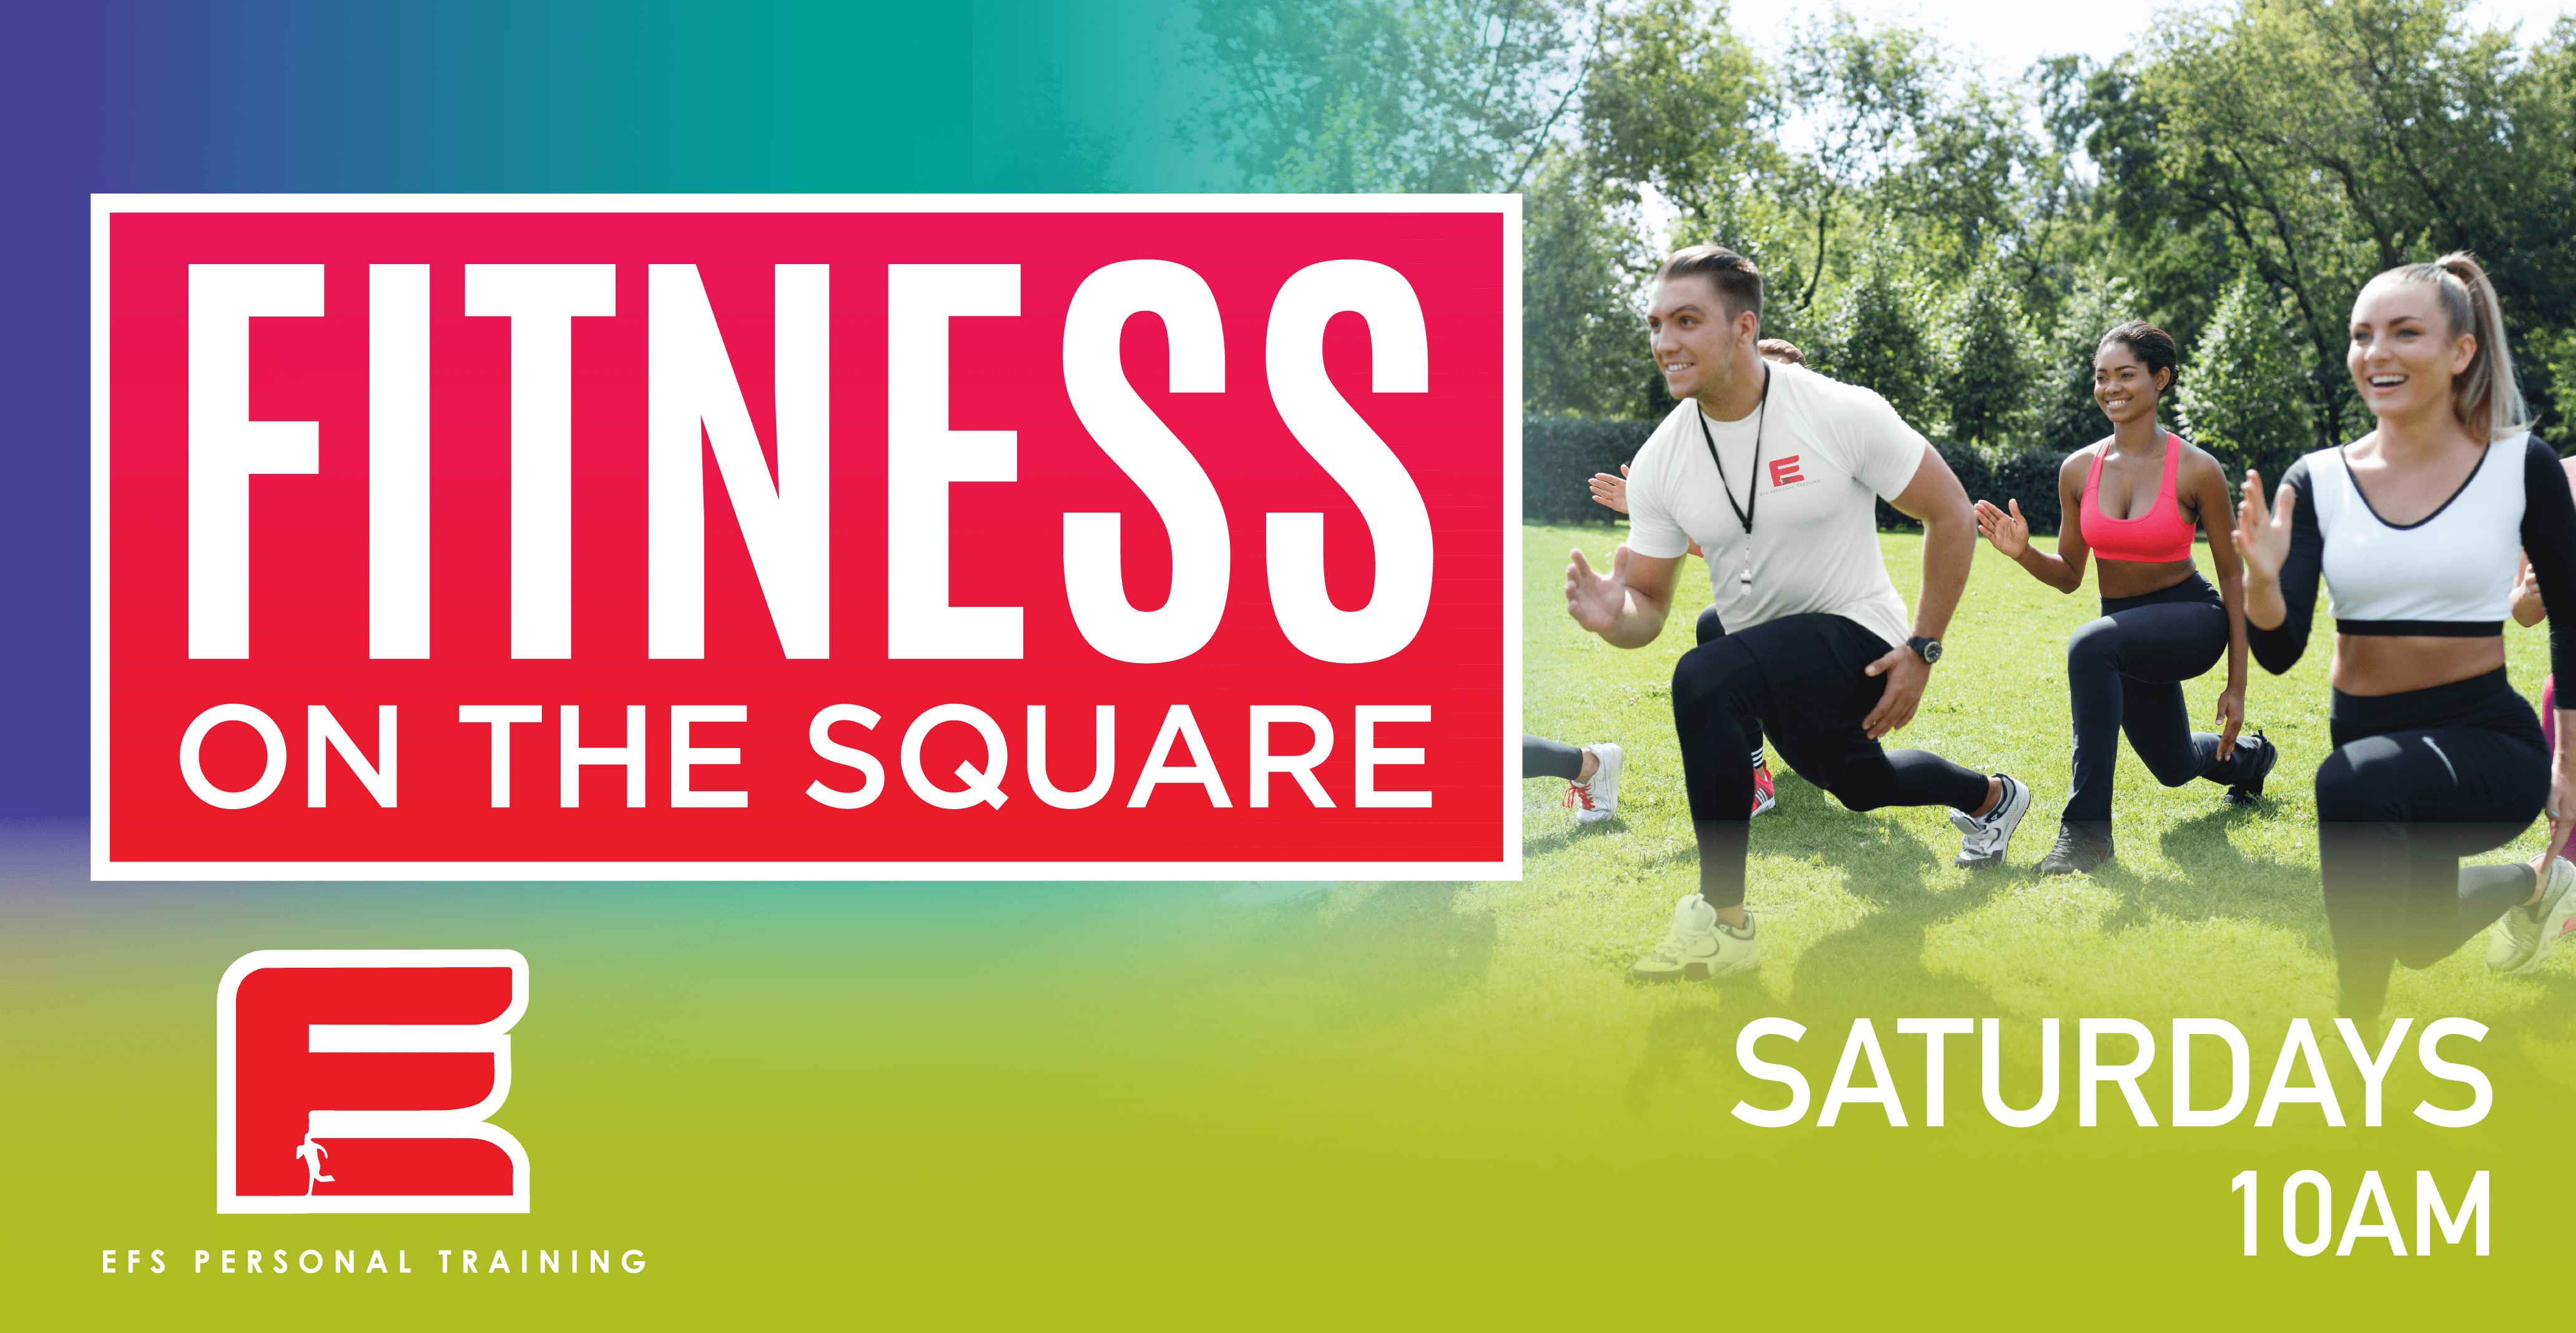 Fitness on the Square